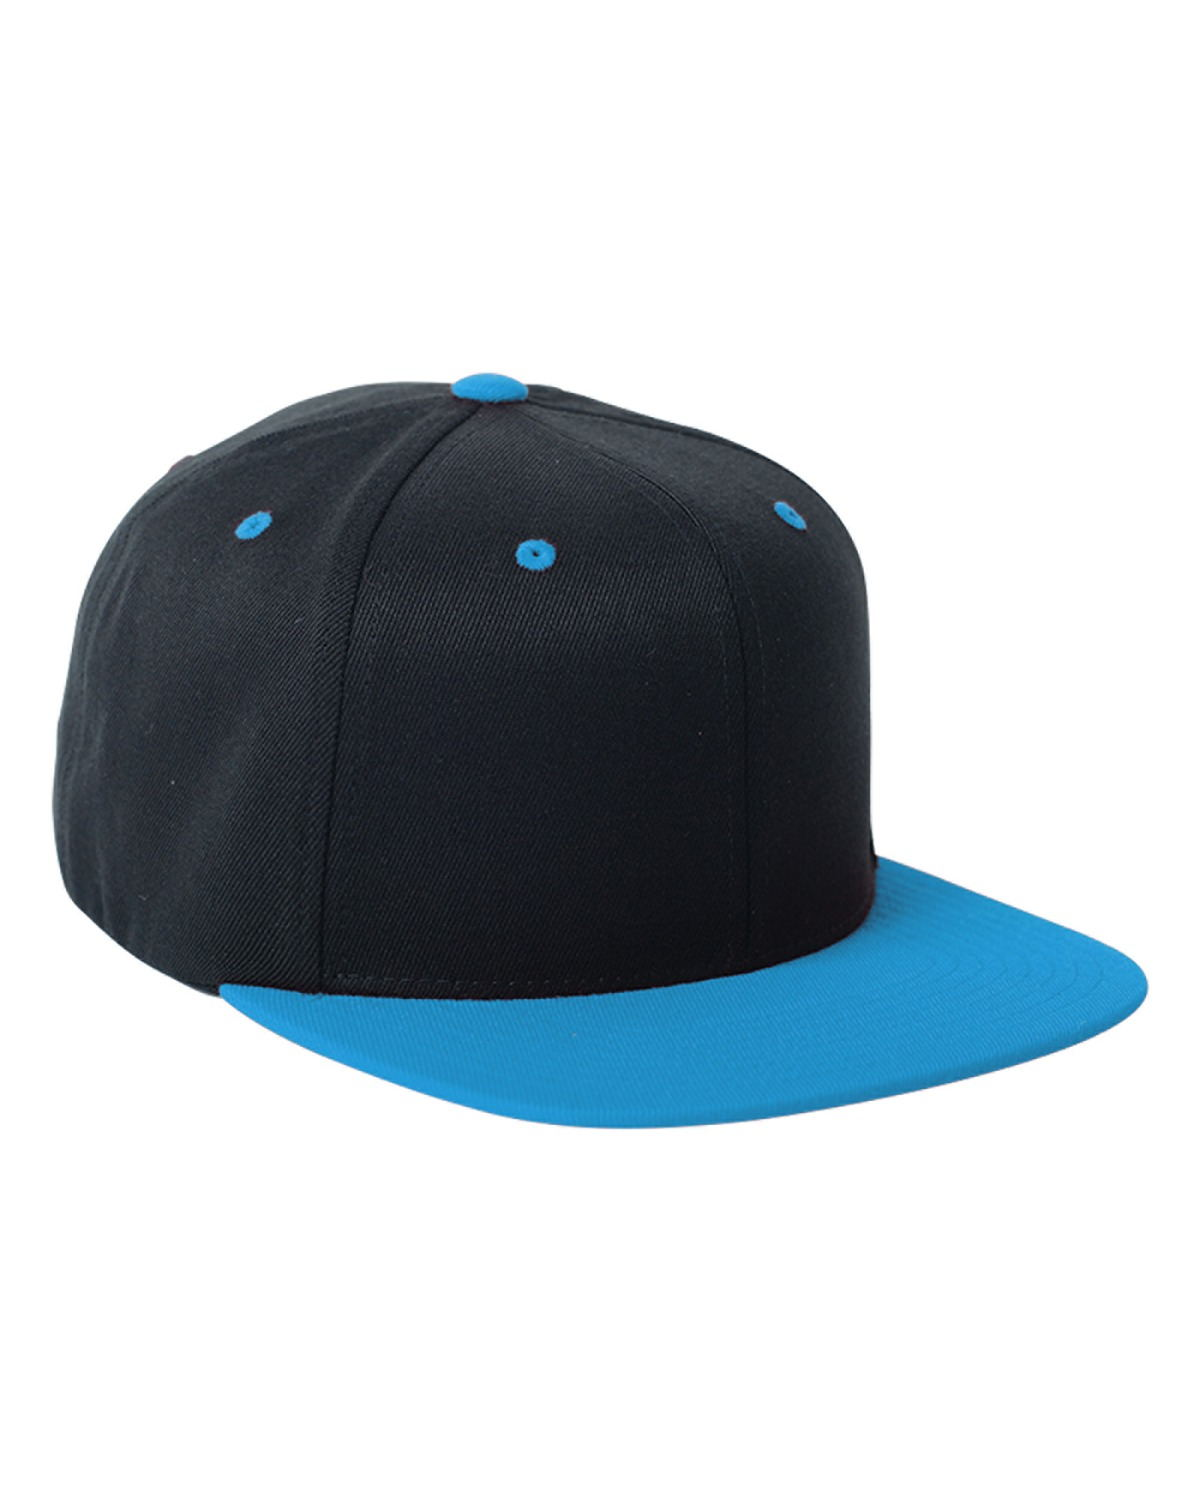 Flexfit 110FT - 110 Wool Blend Two-Tone Cap